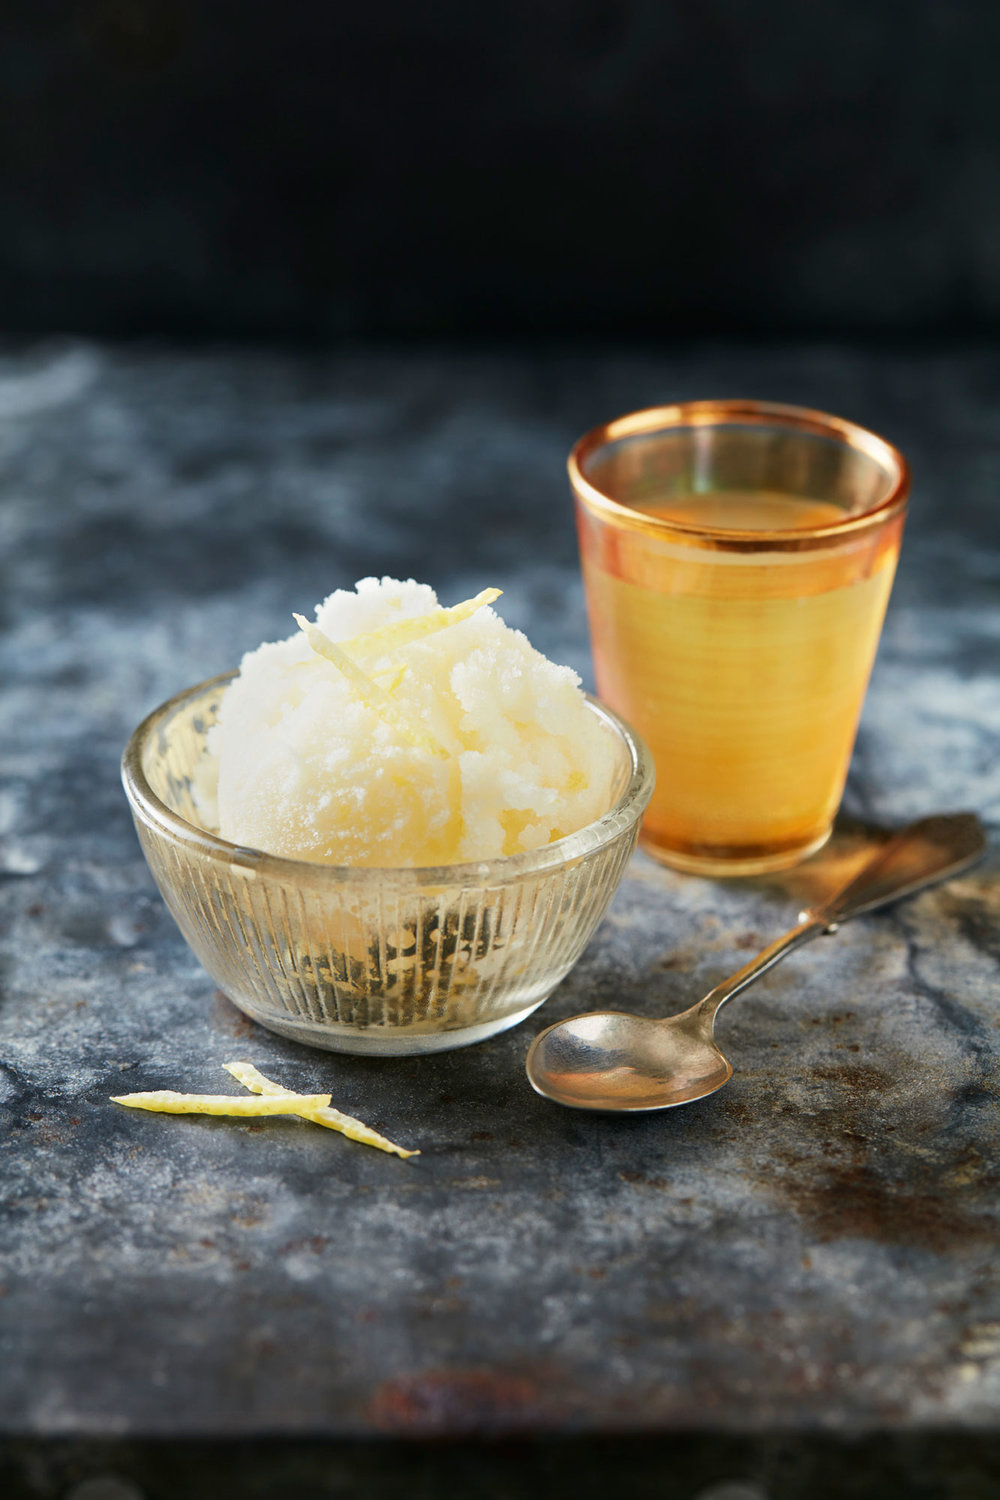 Lemon-Sorbet-and-Limoncino-2_027.jpg